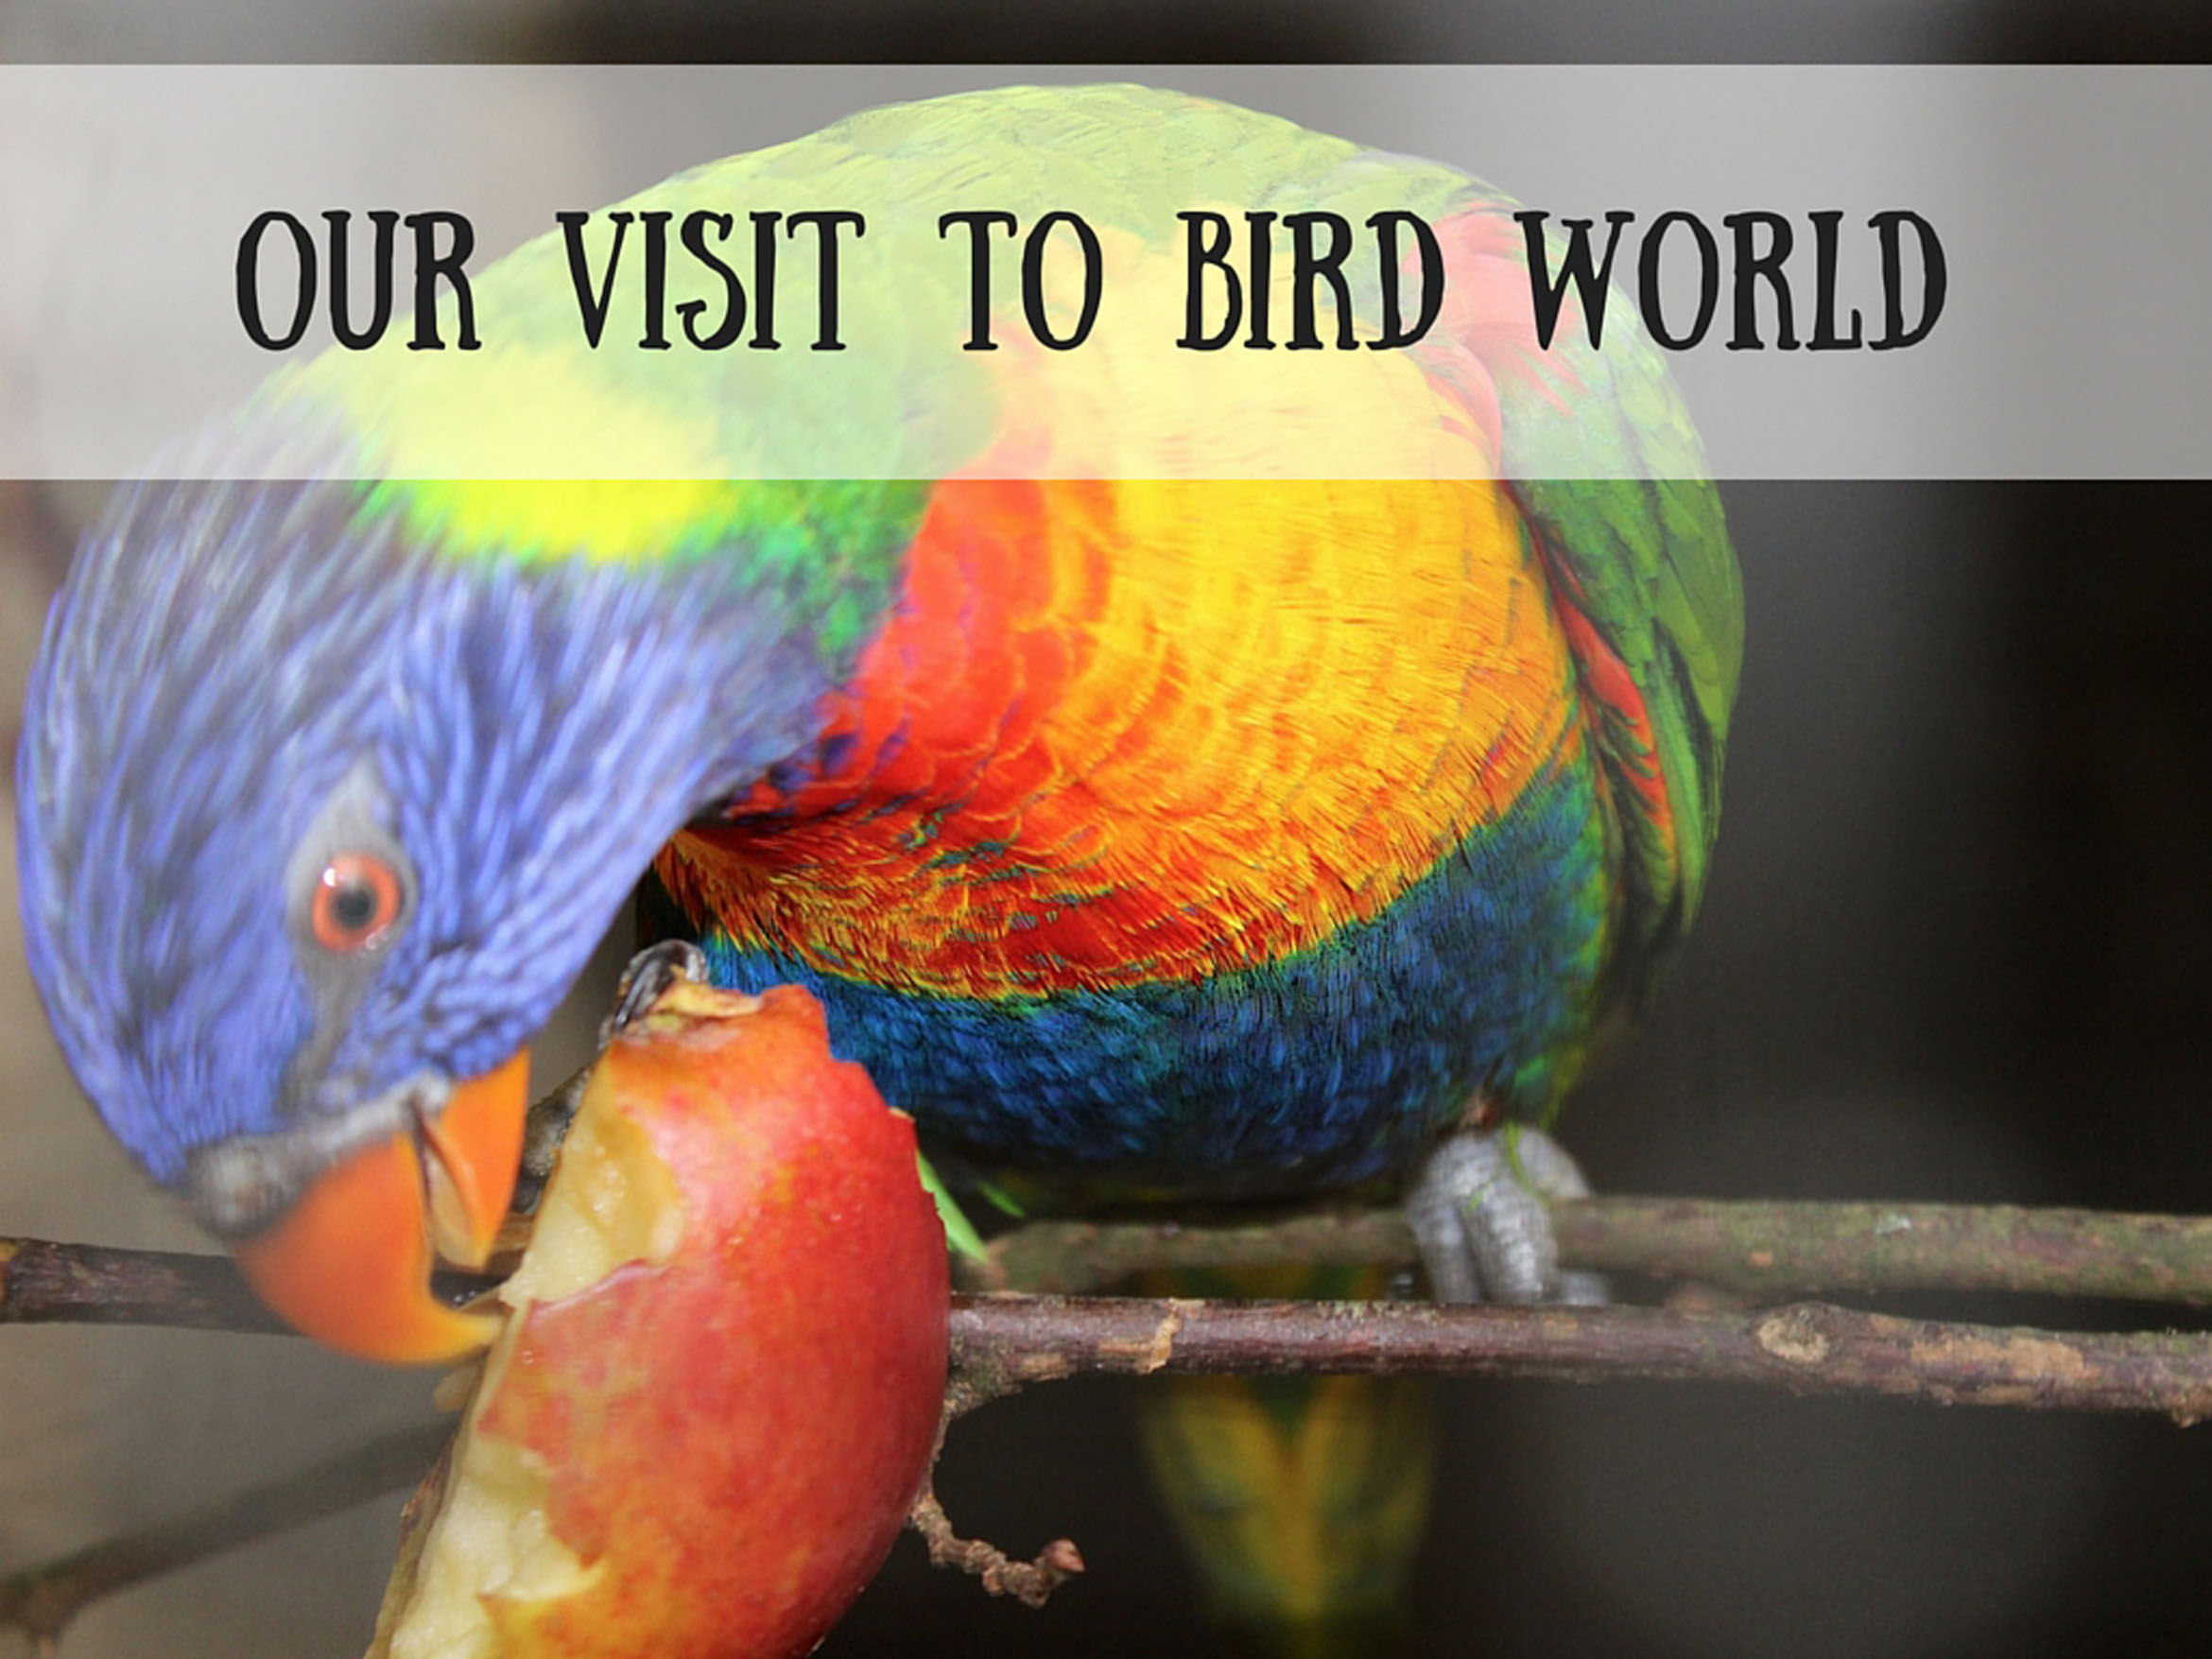 Our Visit to Bird World